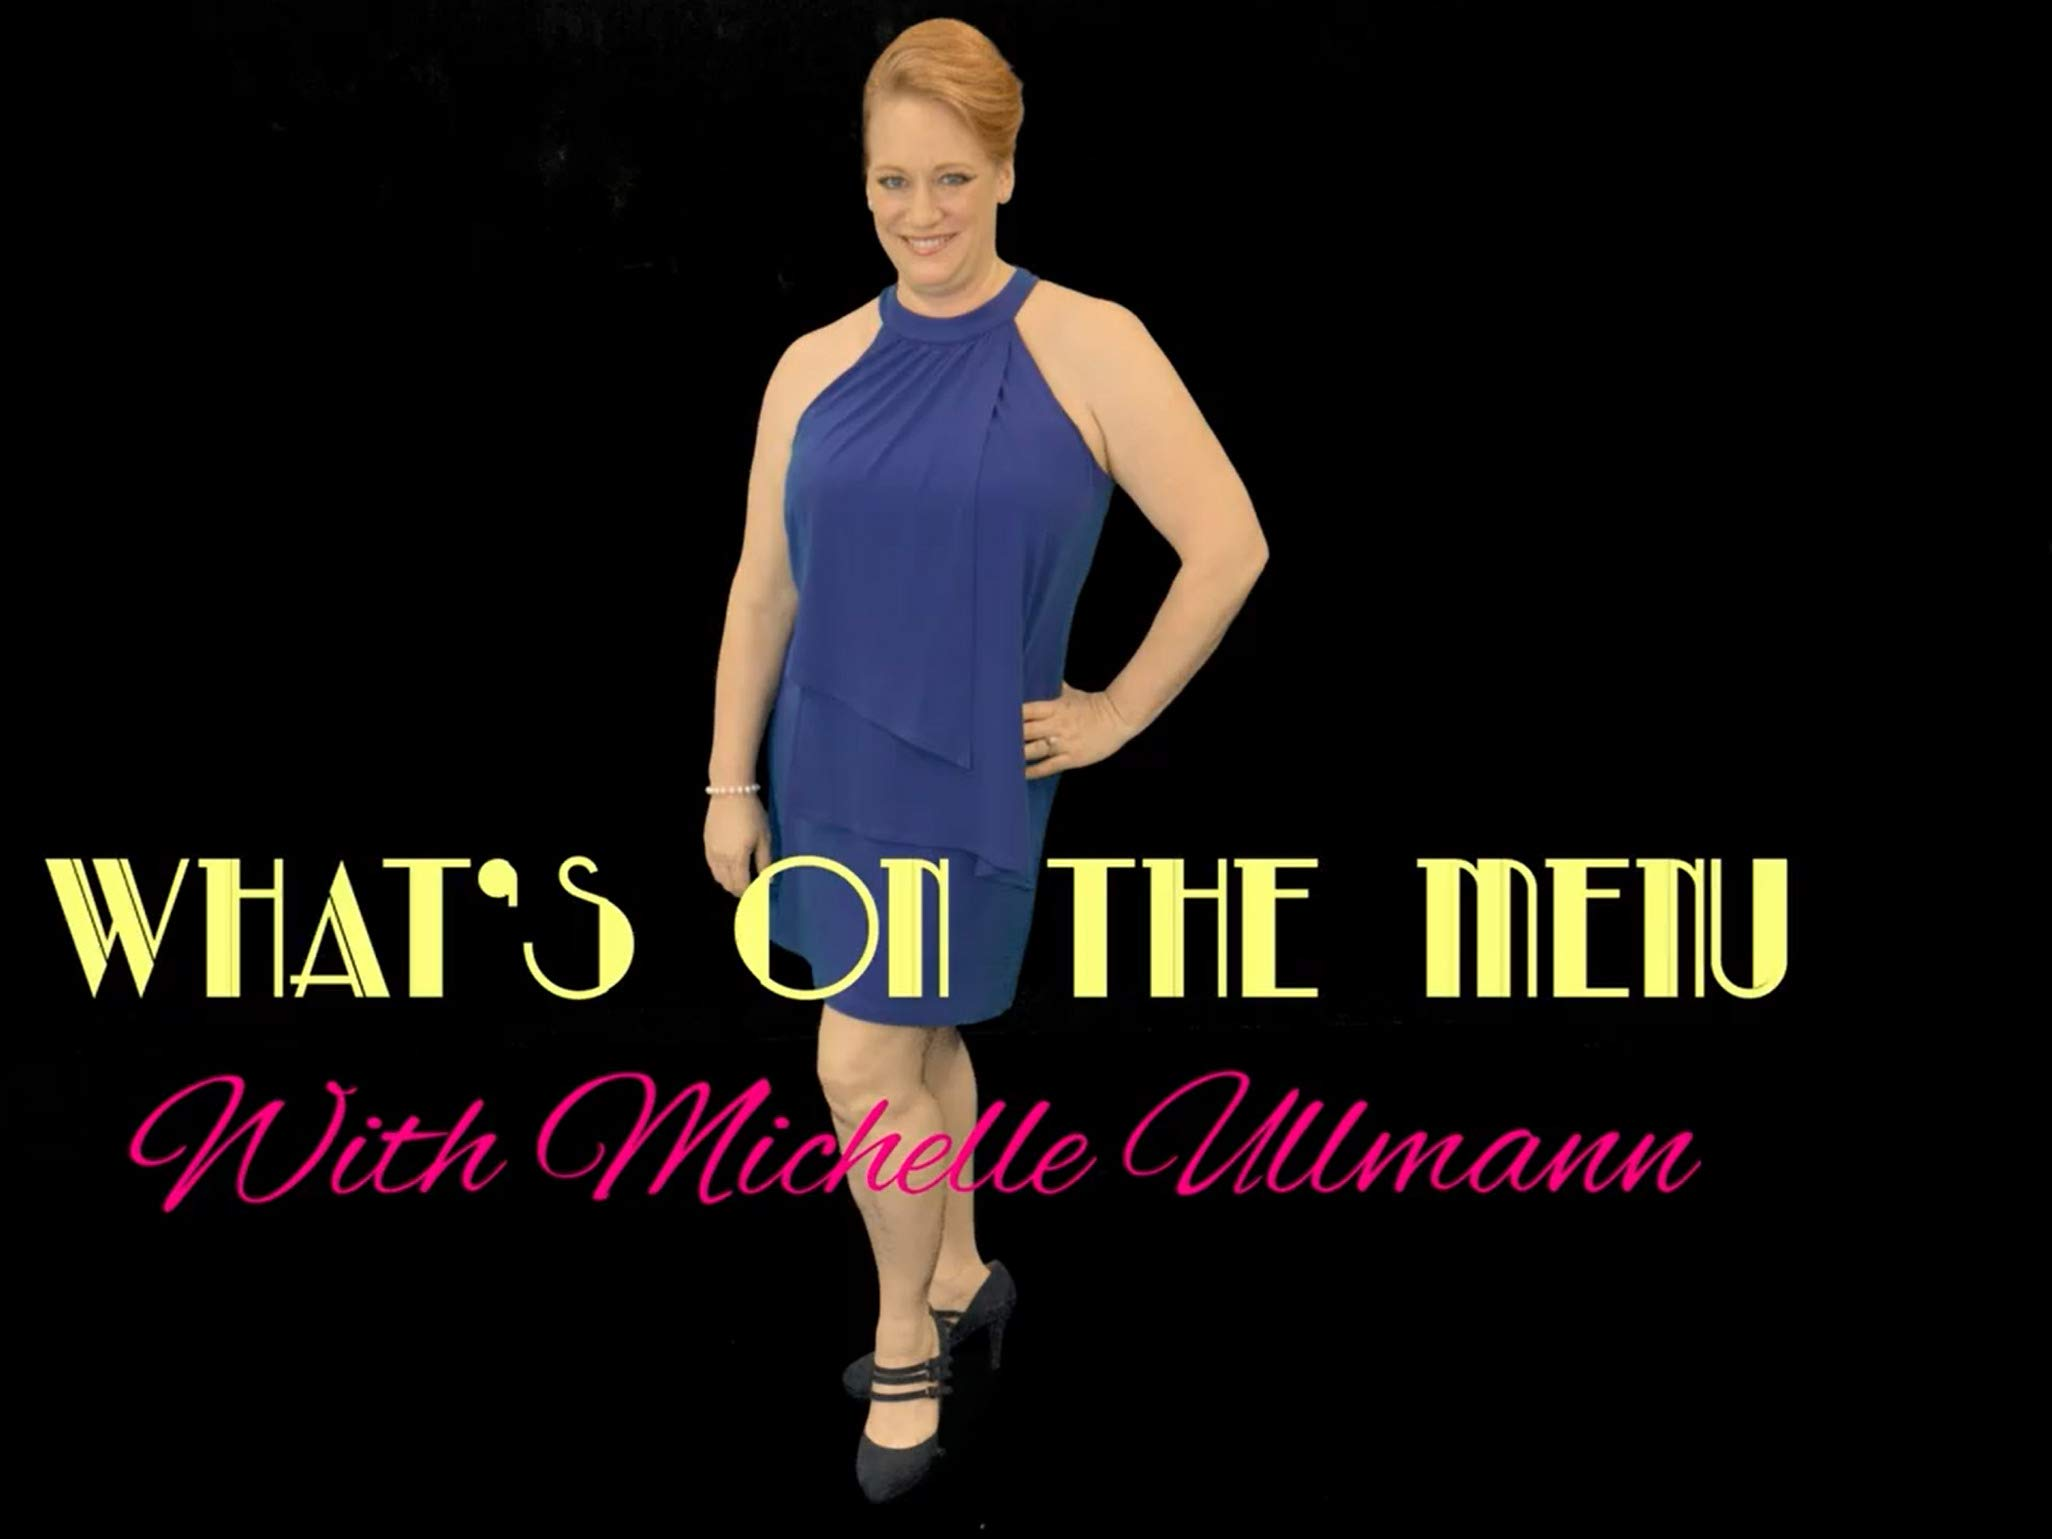 What's On The Menu with Michelle Ullmann